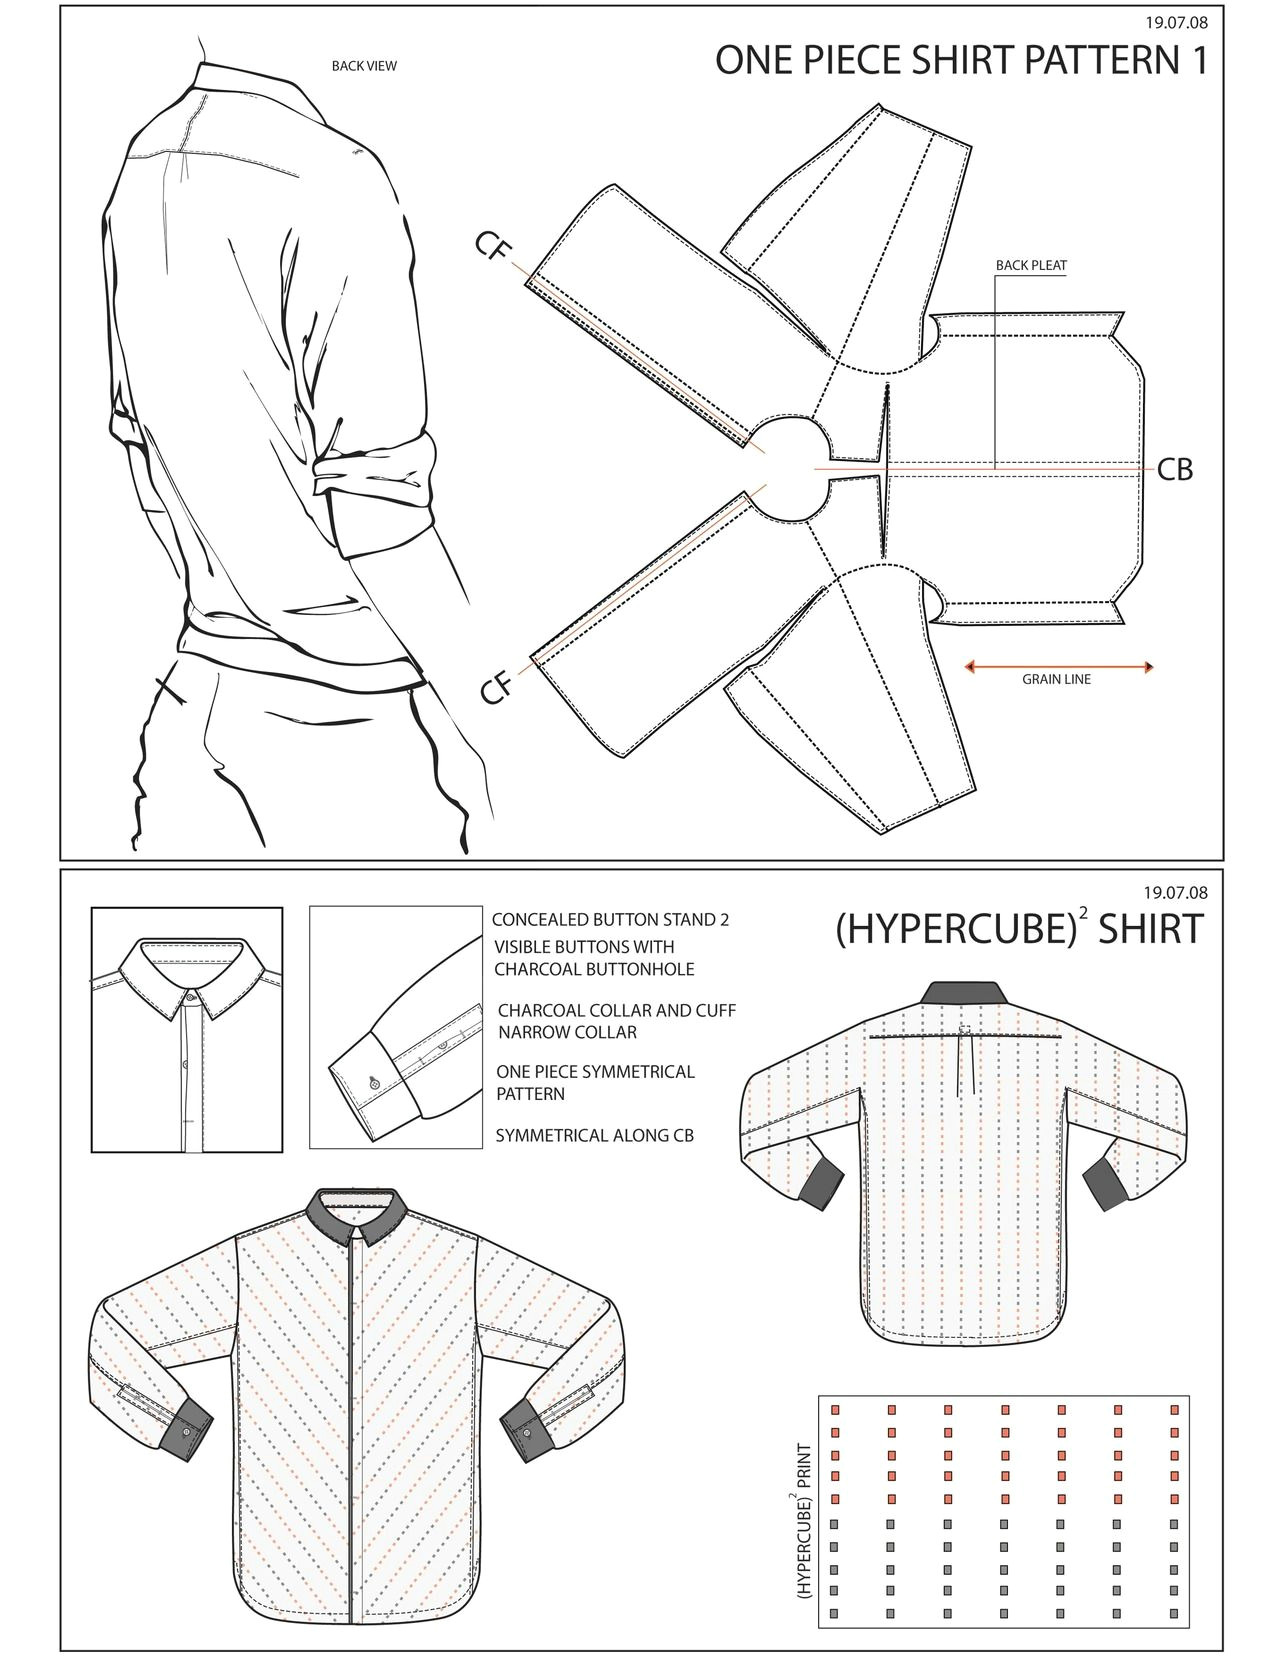 one piece shirt experimental pattern cutting pattern done by me although i don t take pattern cutting work the shirt fits just as well as any old shirt